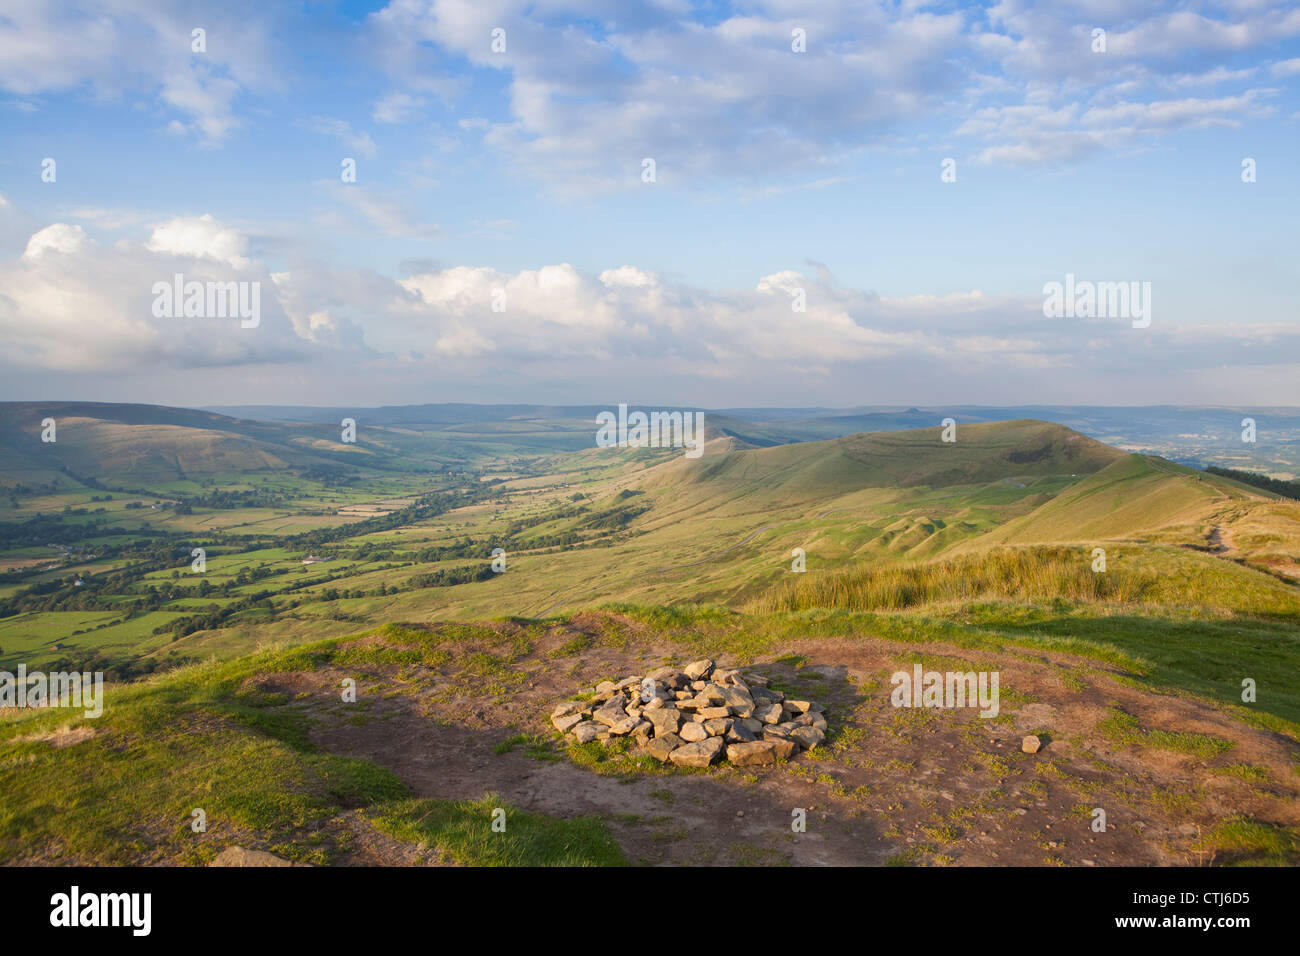 The Vale of Edale from the 'Lords Seat', Rushup Edge, Peak District, Derbyshire, England, UK - Stock Image